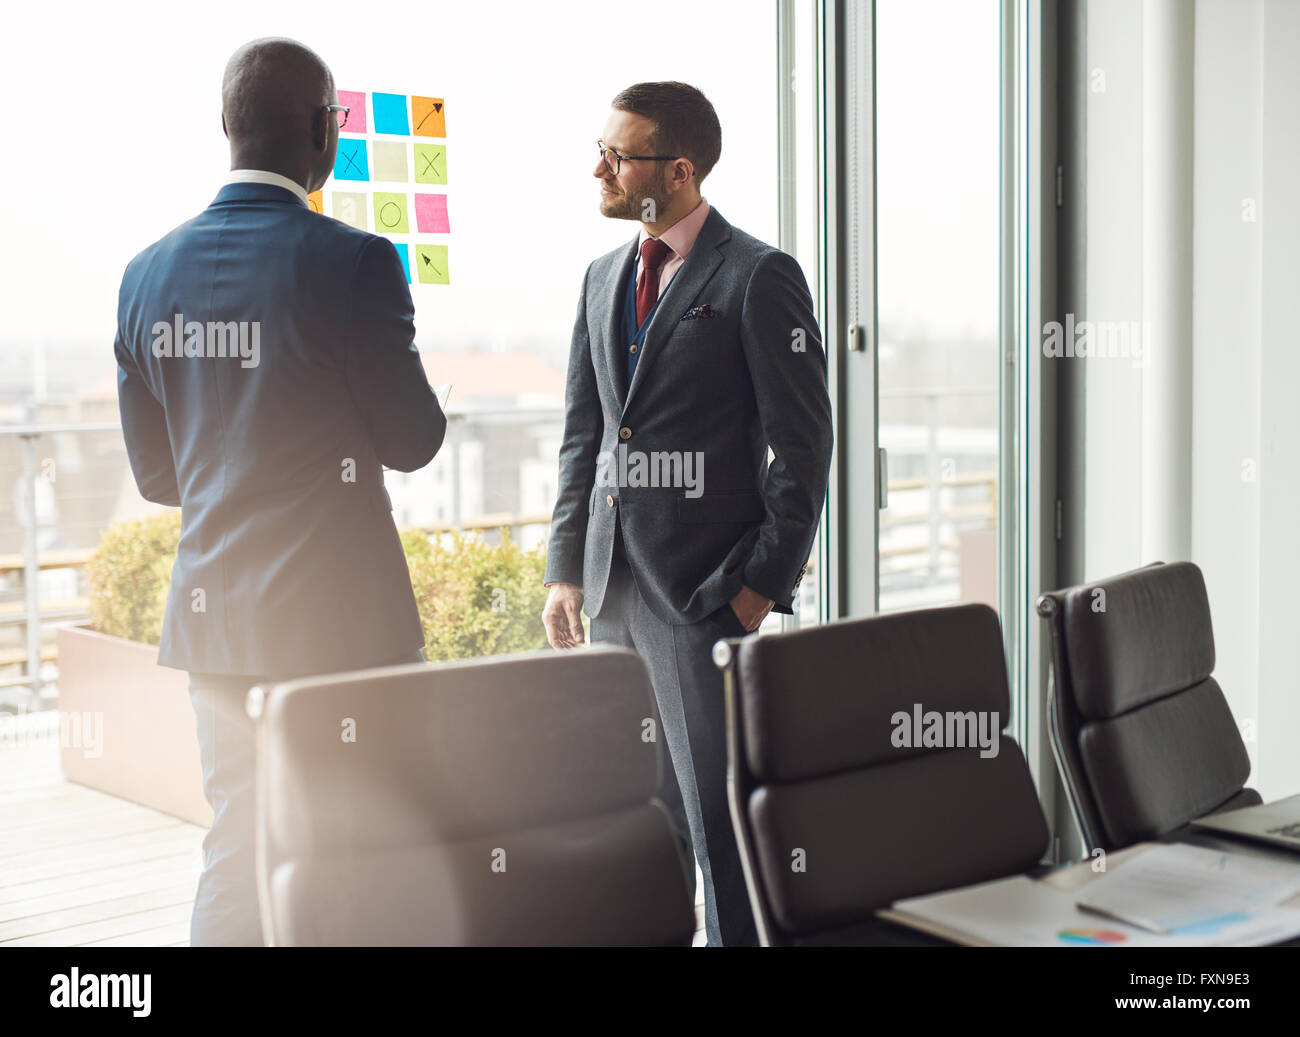 Two business man in stylish suits standing having a discussion in the office looking at a colorful array of sticky - Stock Image